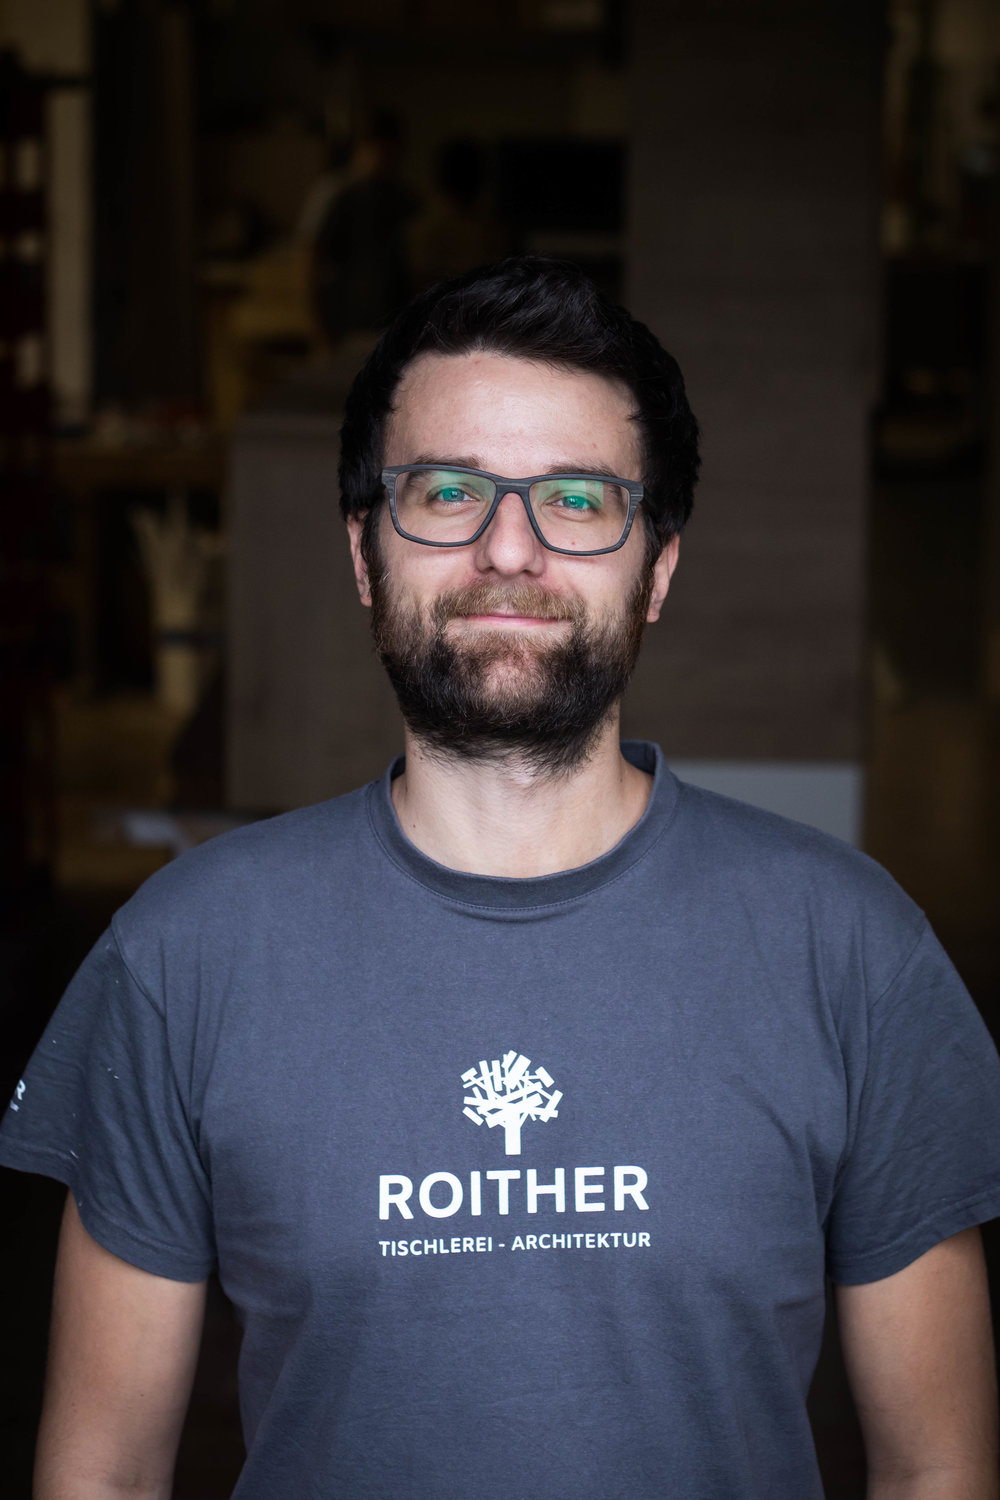 Christian Roither